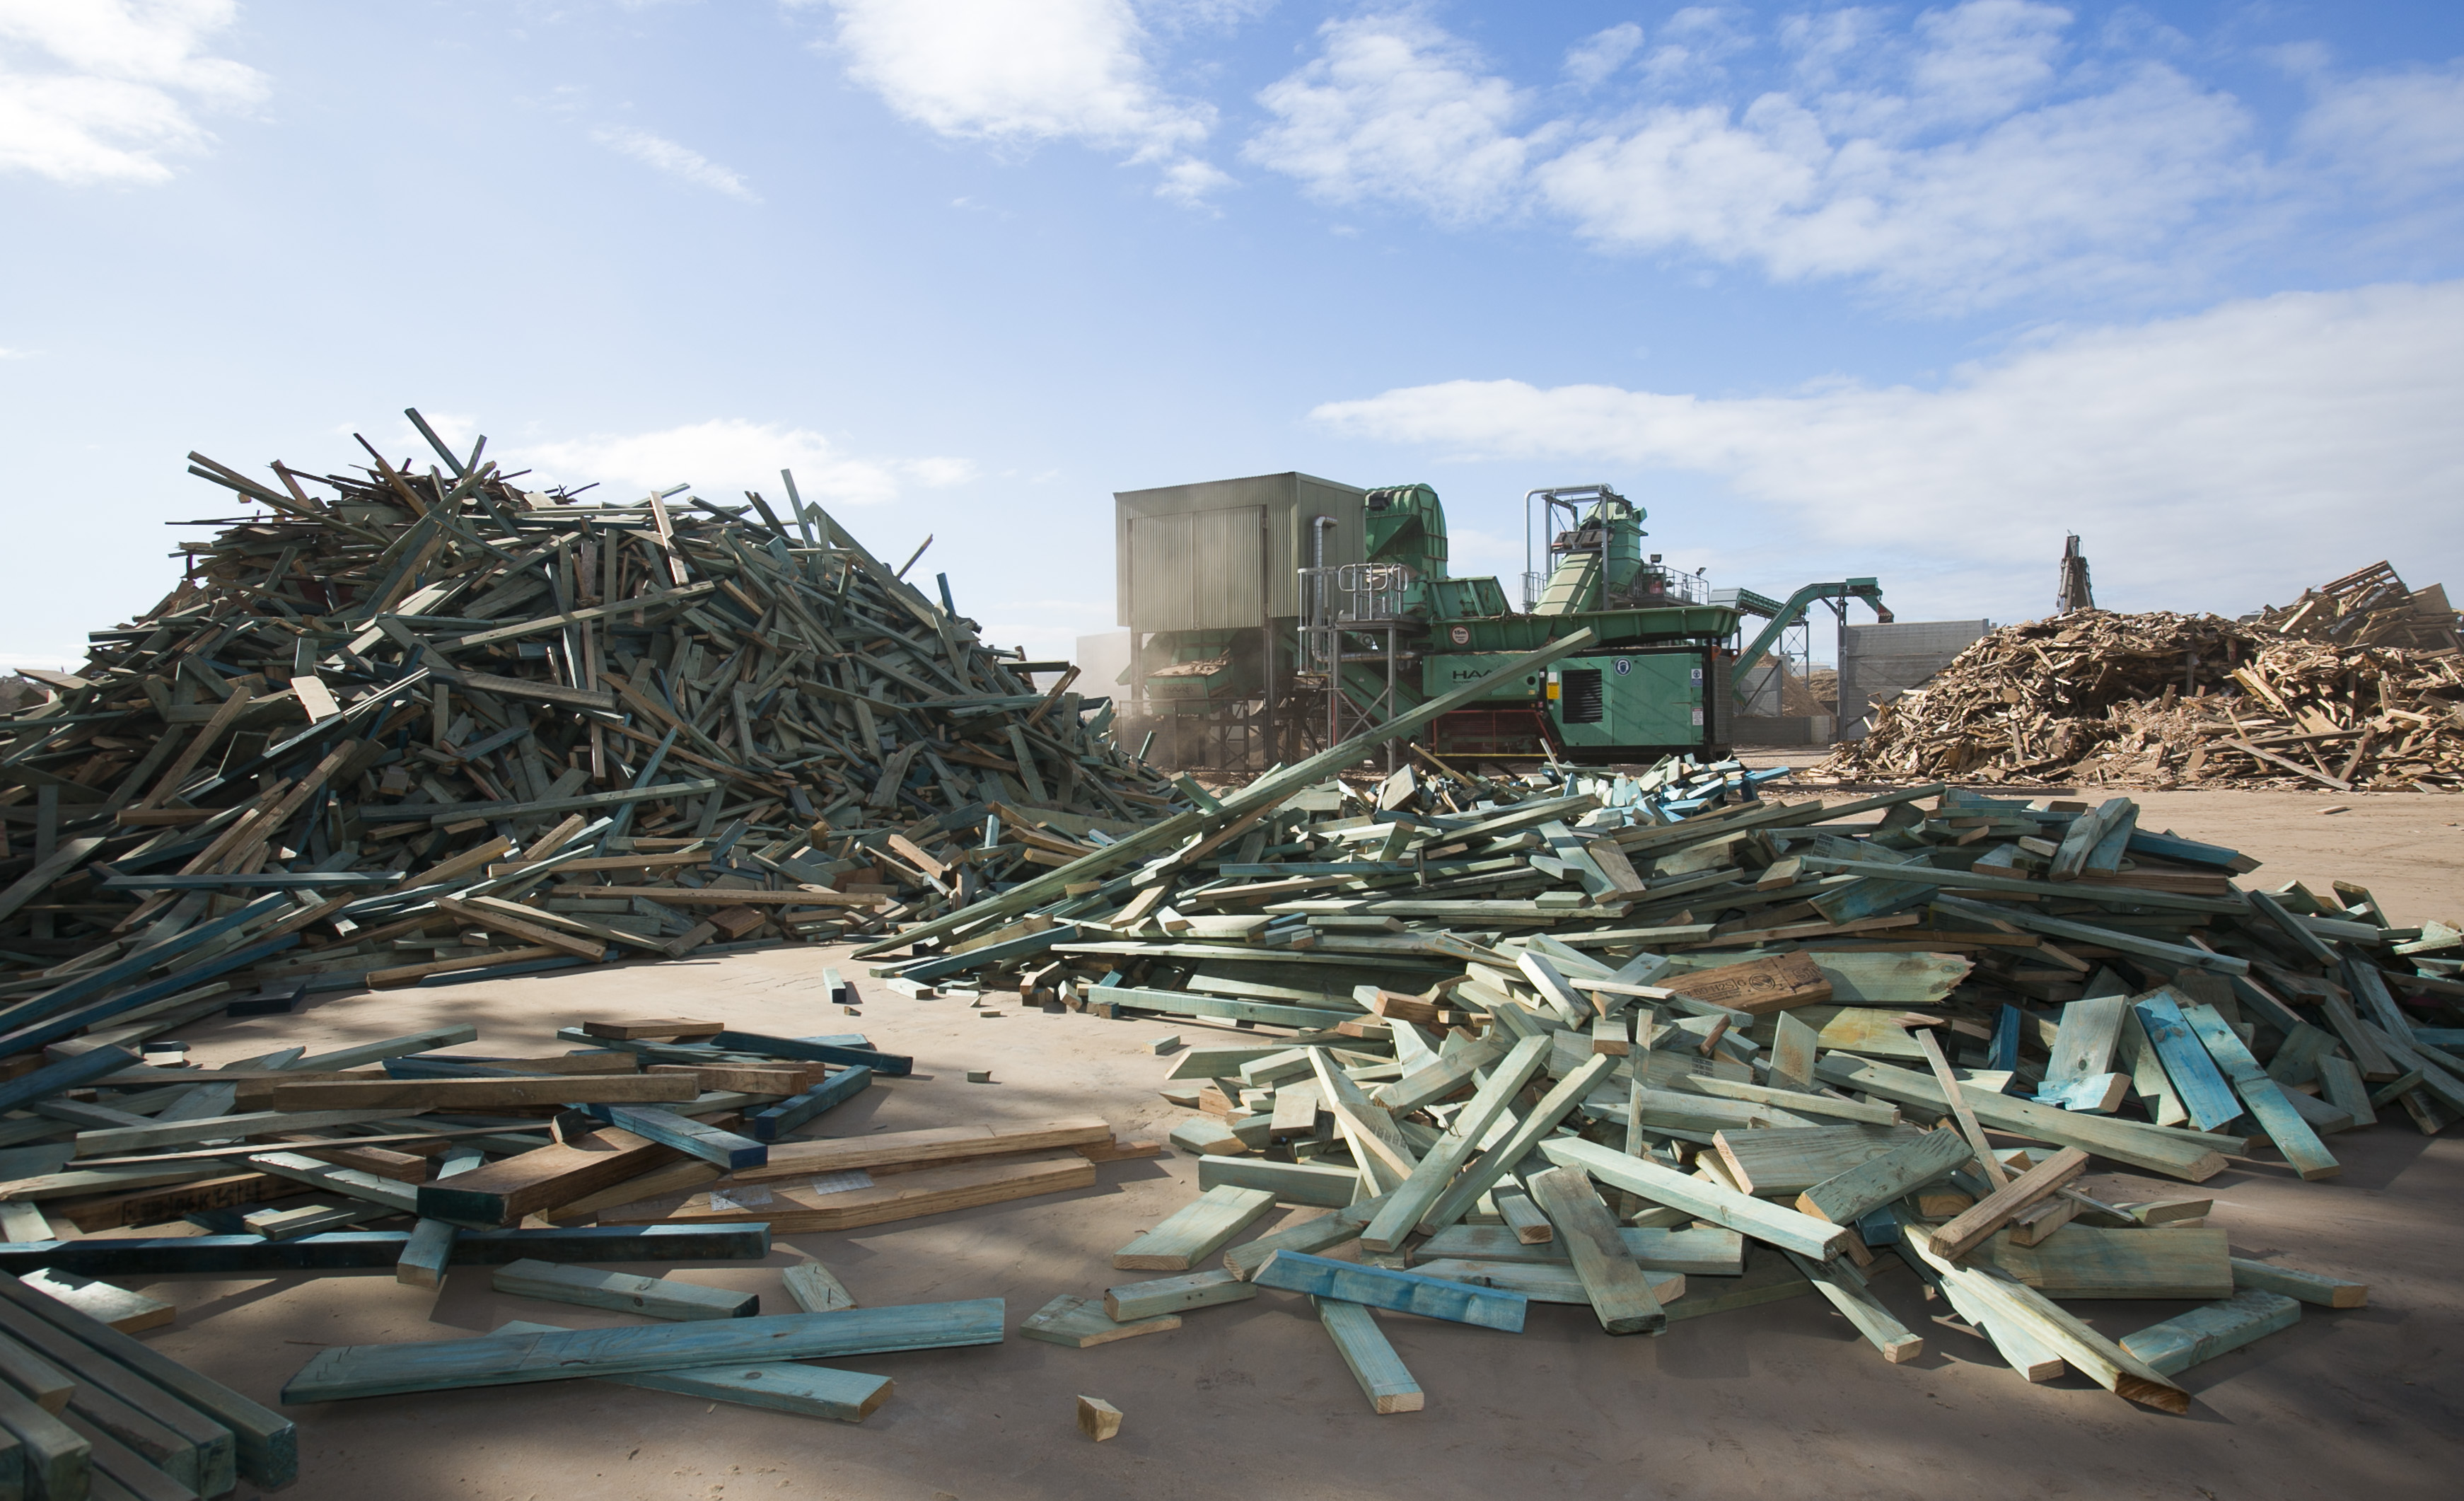 Western Australia's timber recycling plan